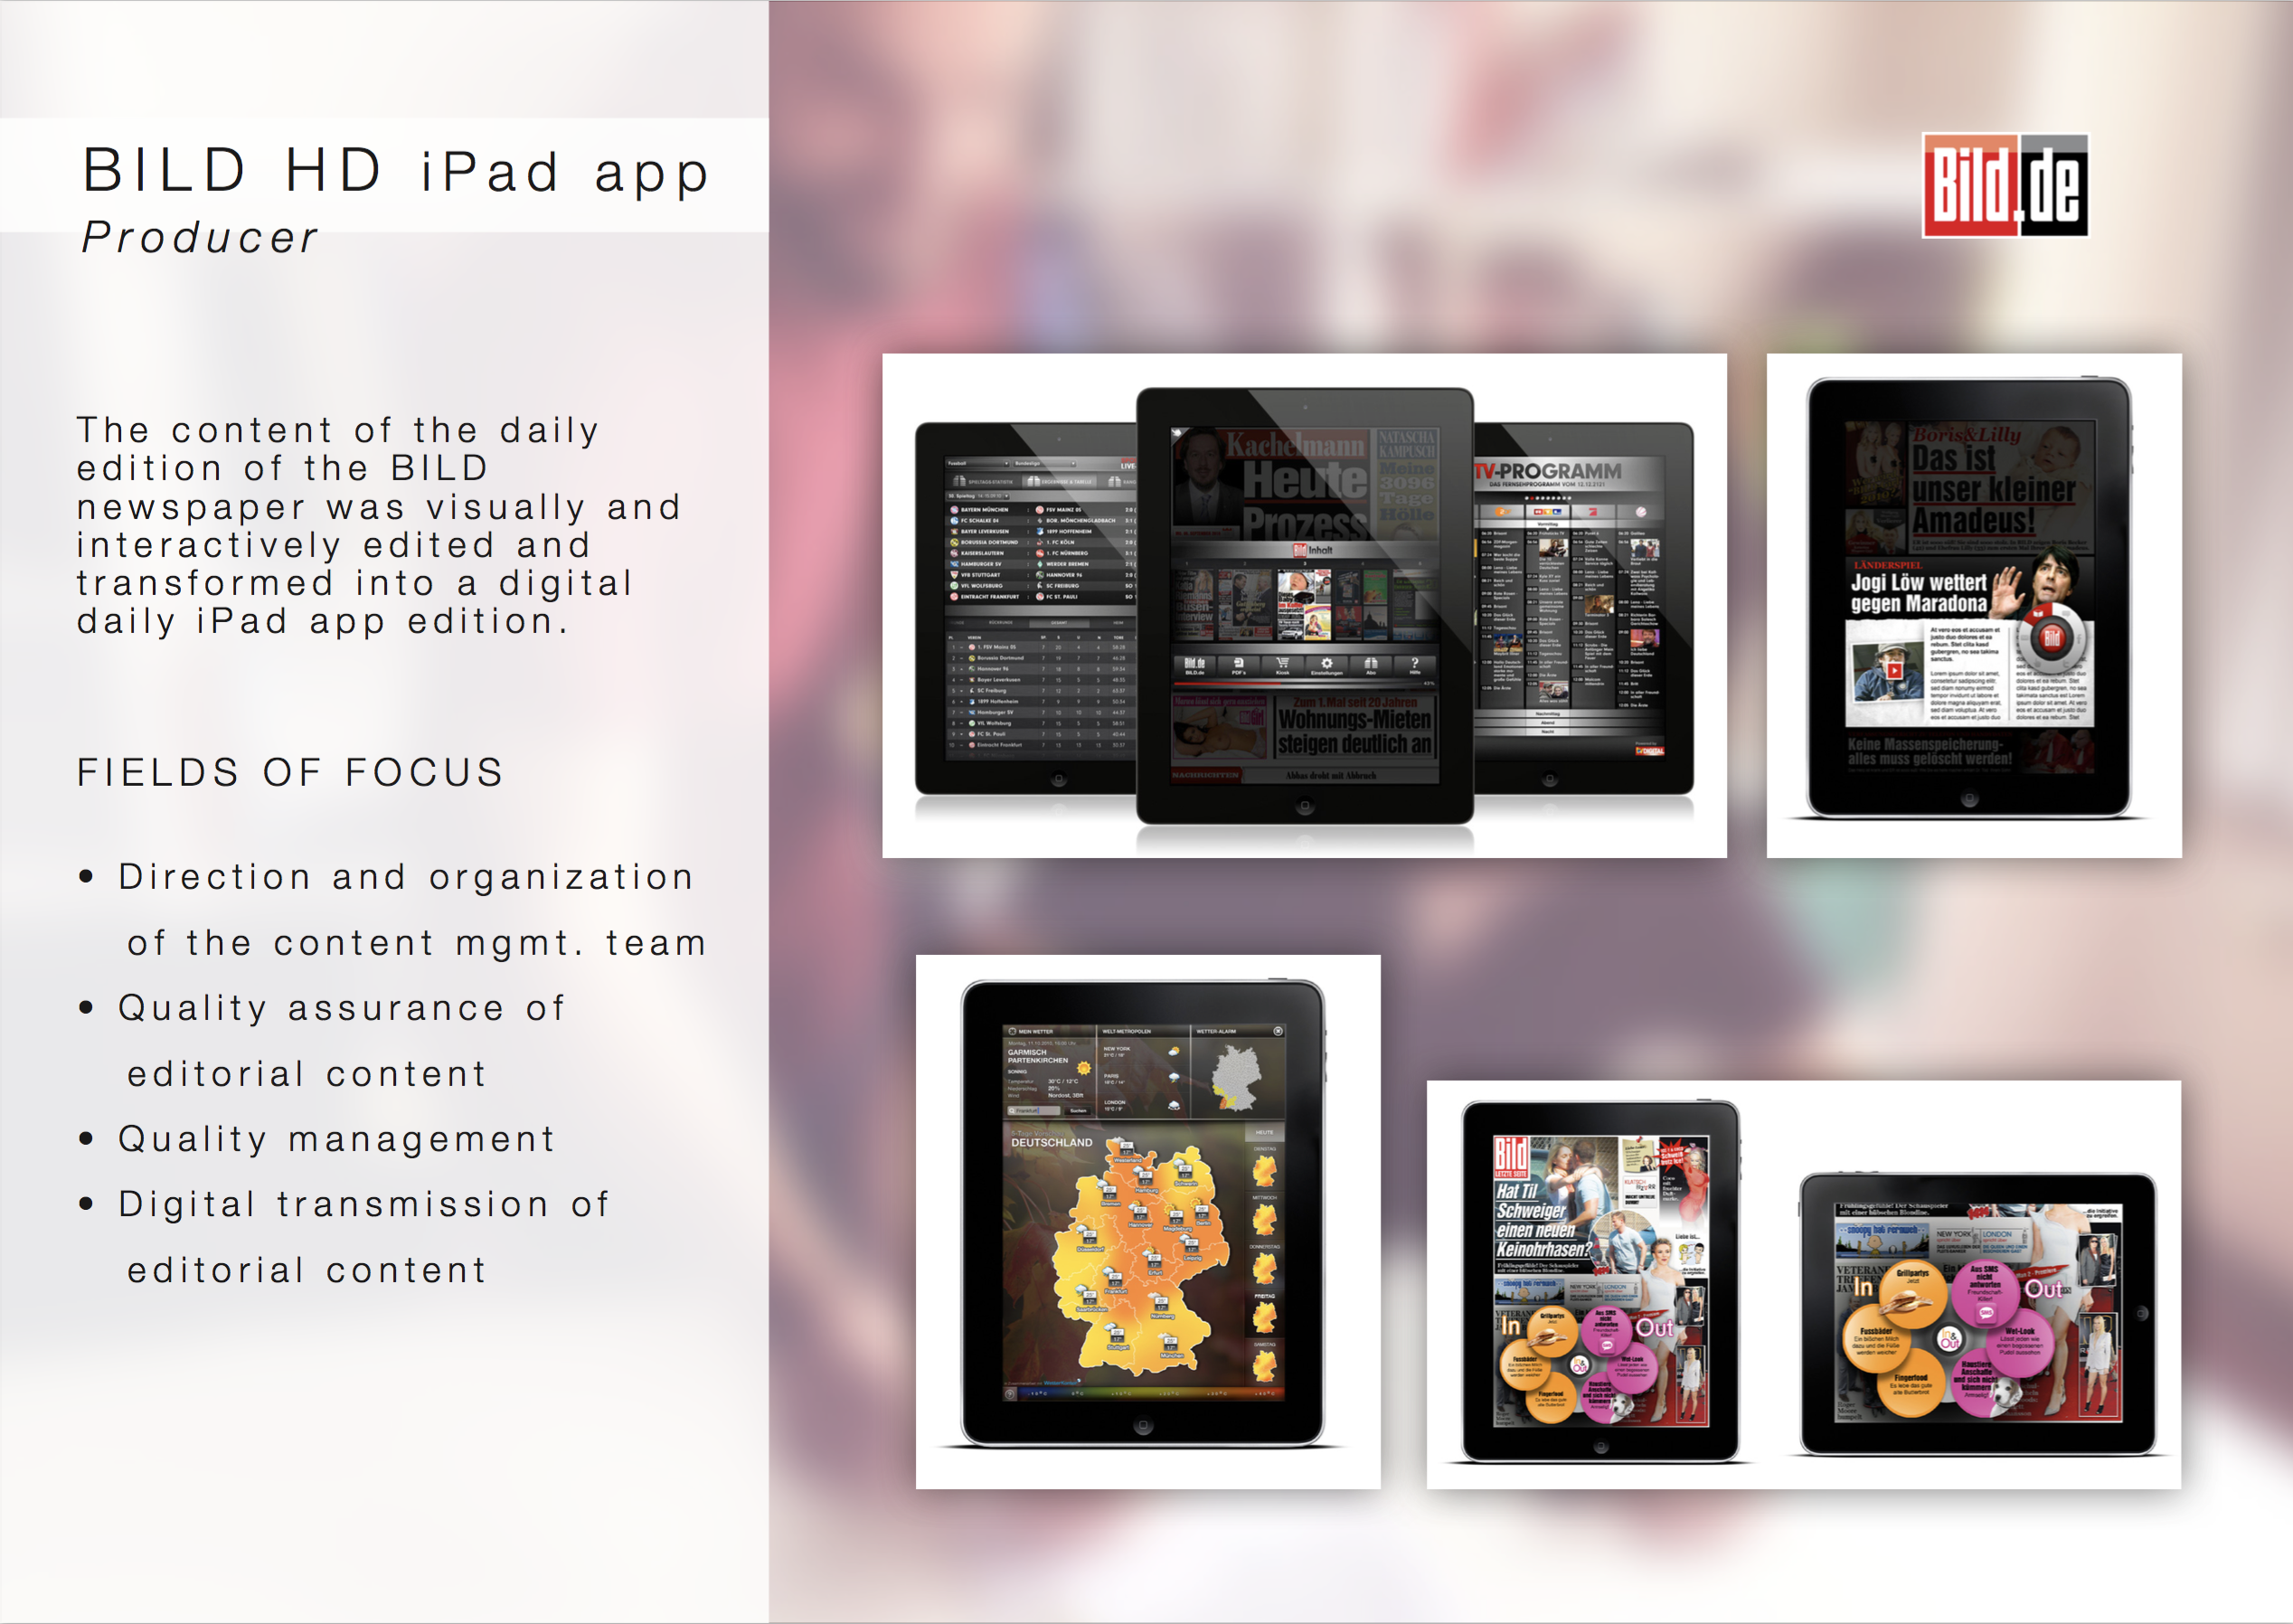 ipad_app_producer_christoph_bartetzko